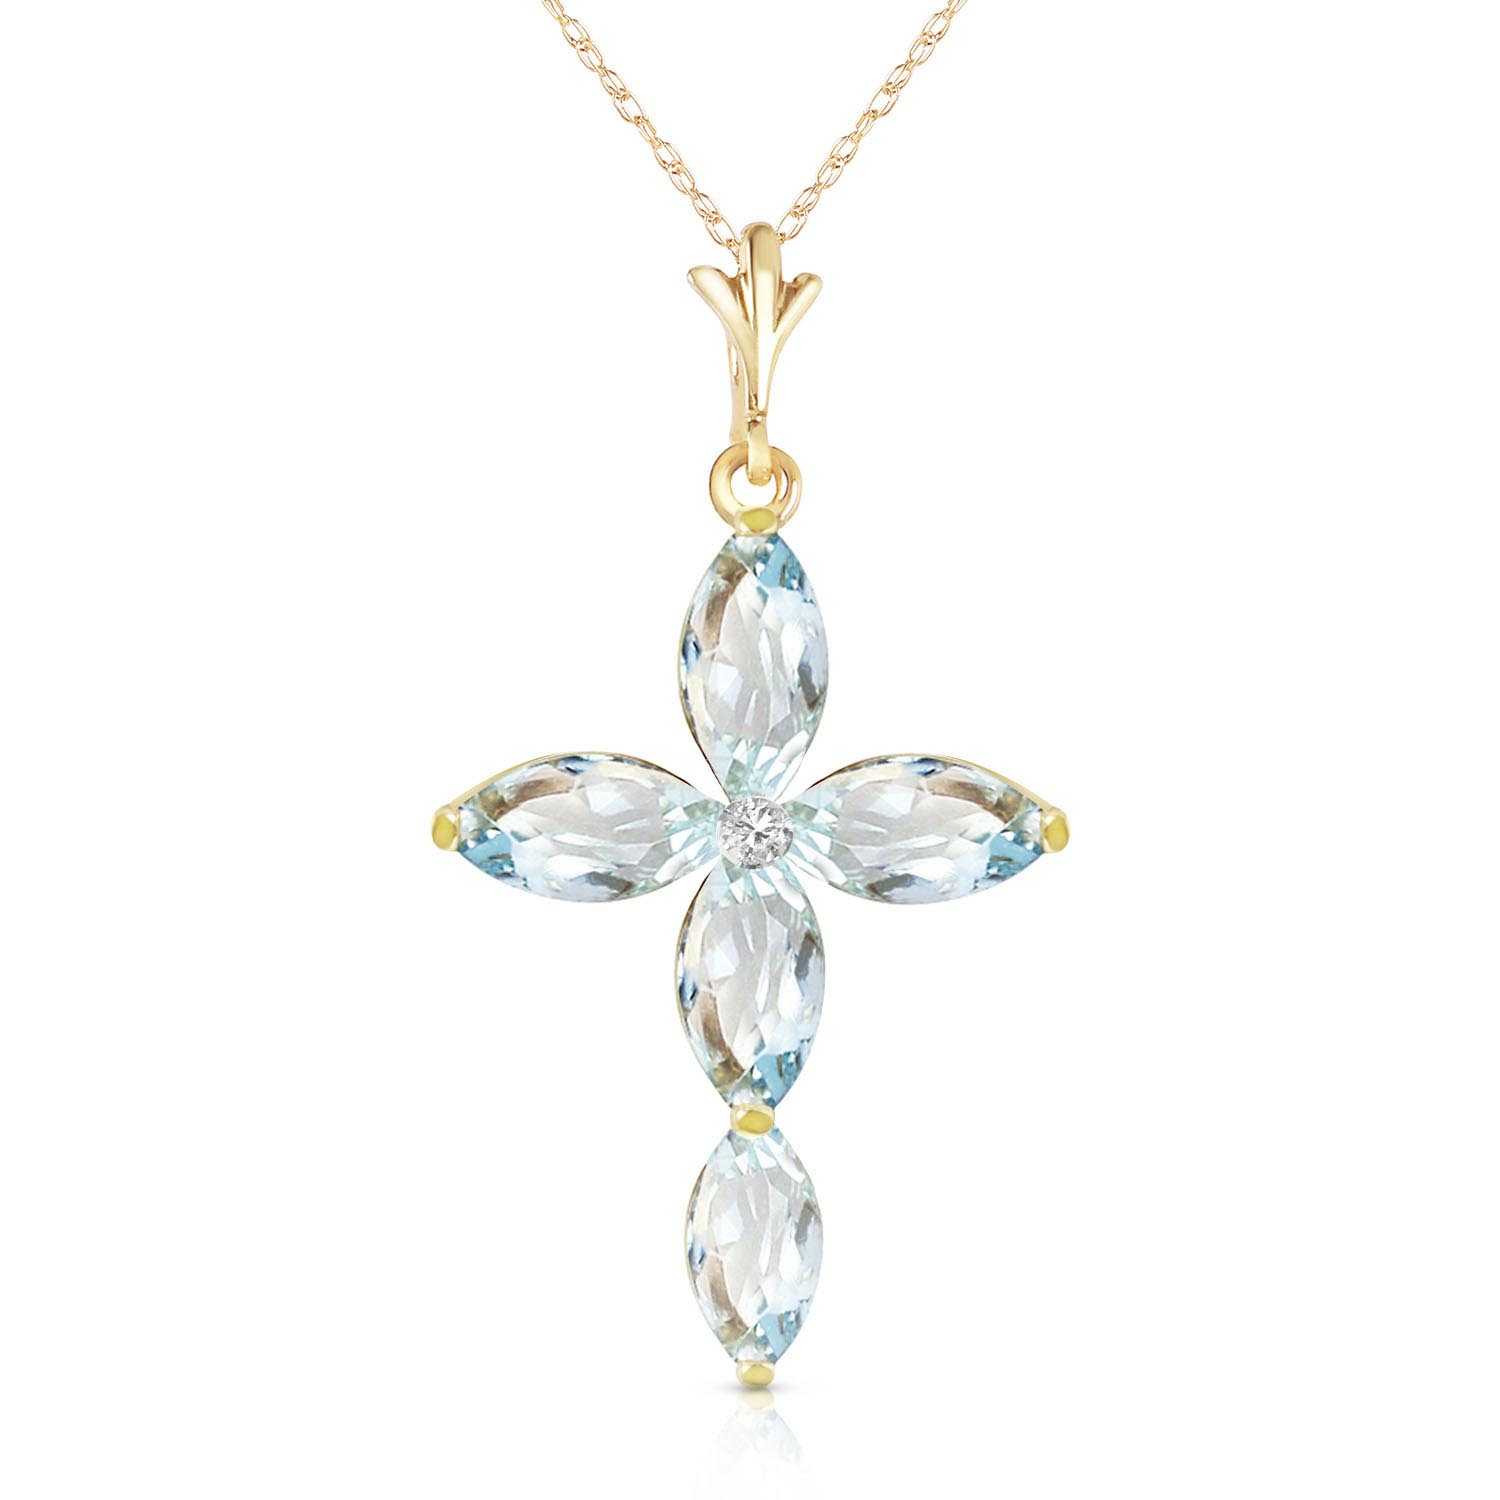 Aquamarine and Diamond Pendant Necklace 1.08ctw in 9ct Gold